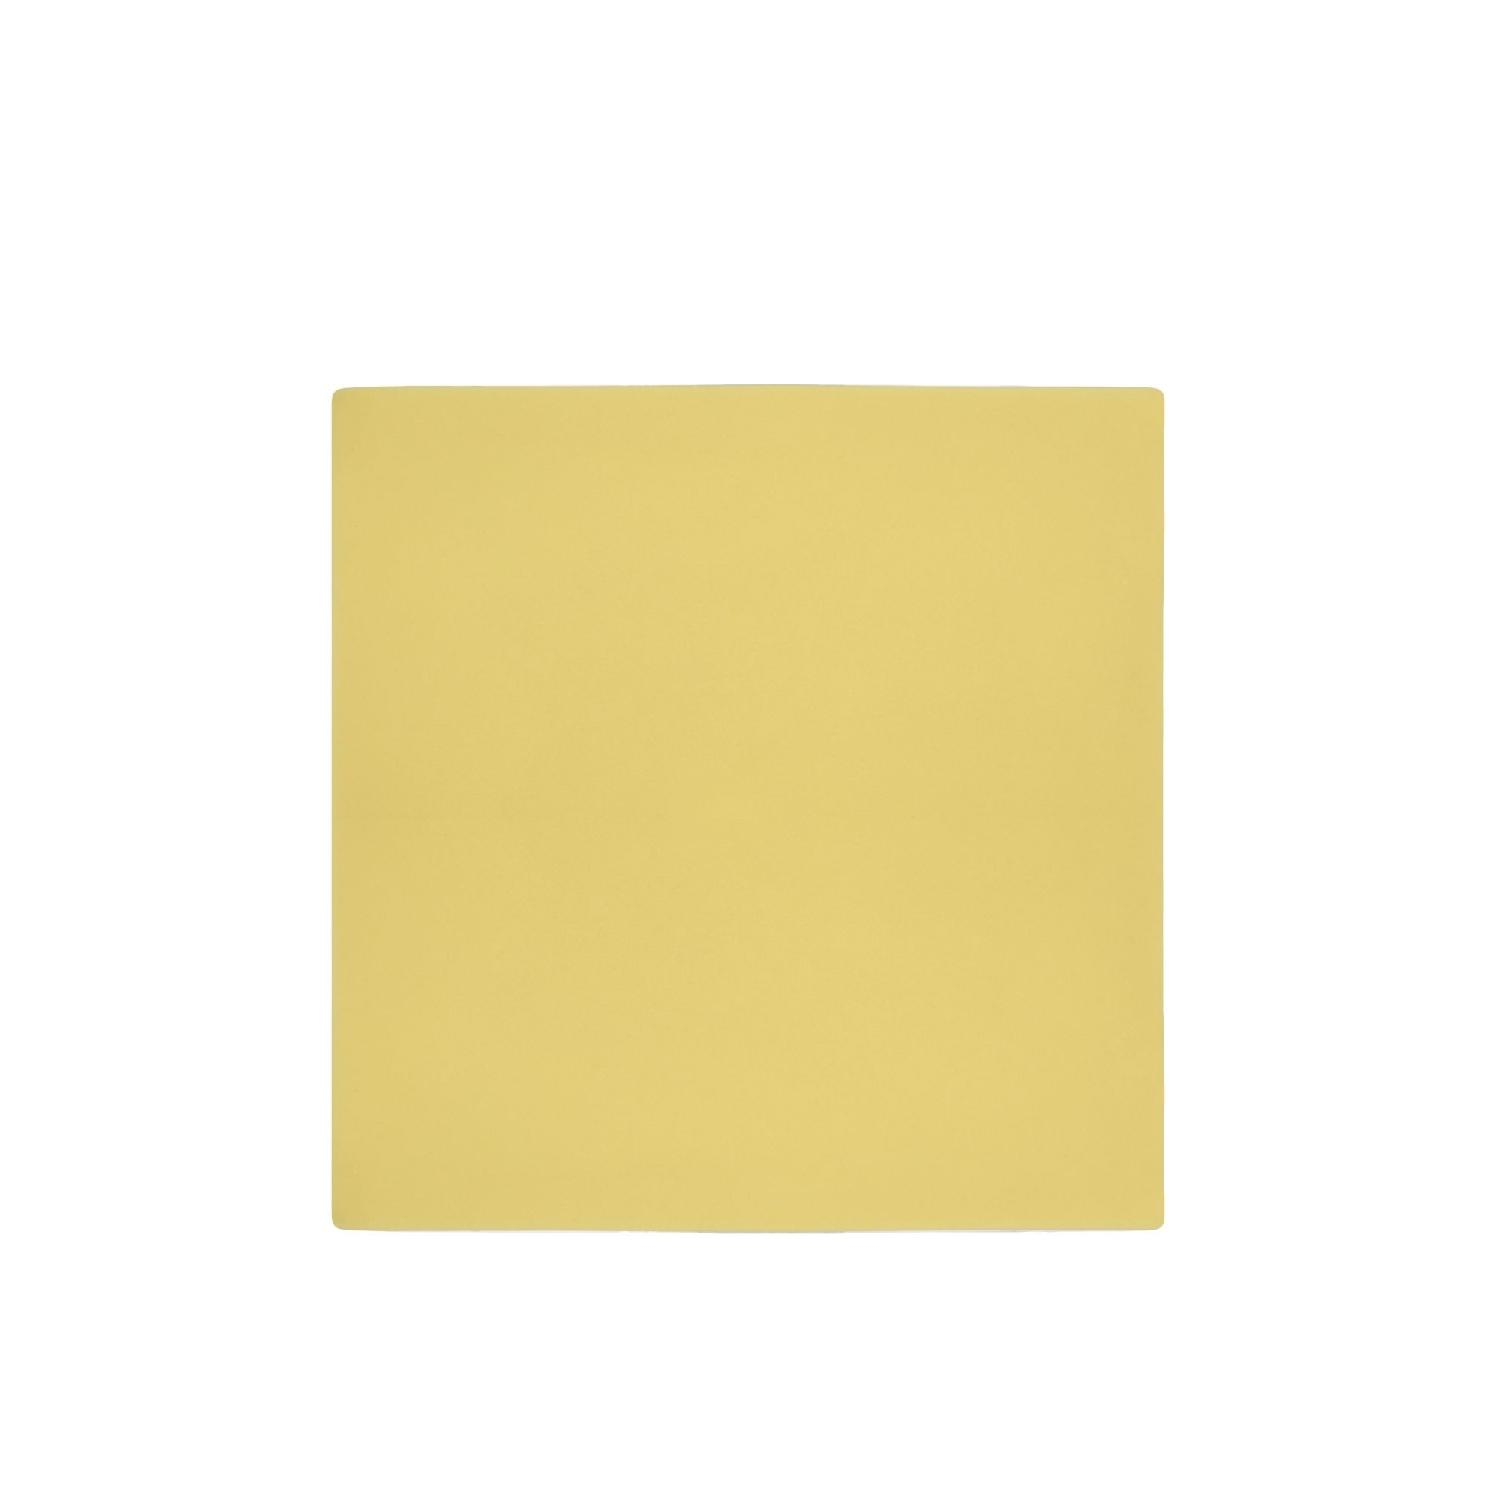 Kartell Philippe Stark Bubble Club Side Tables in Yellow - image-7